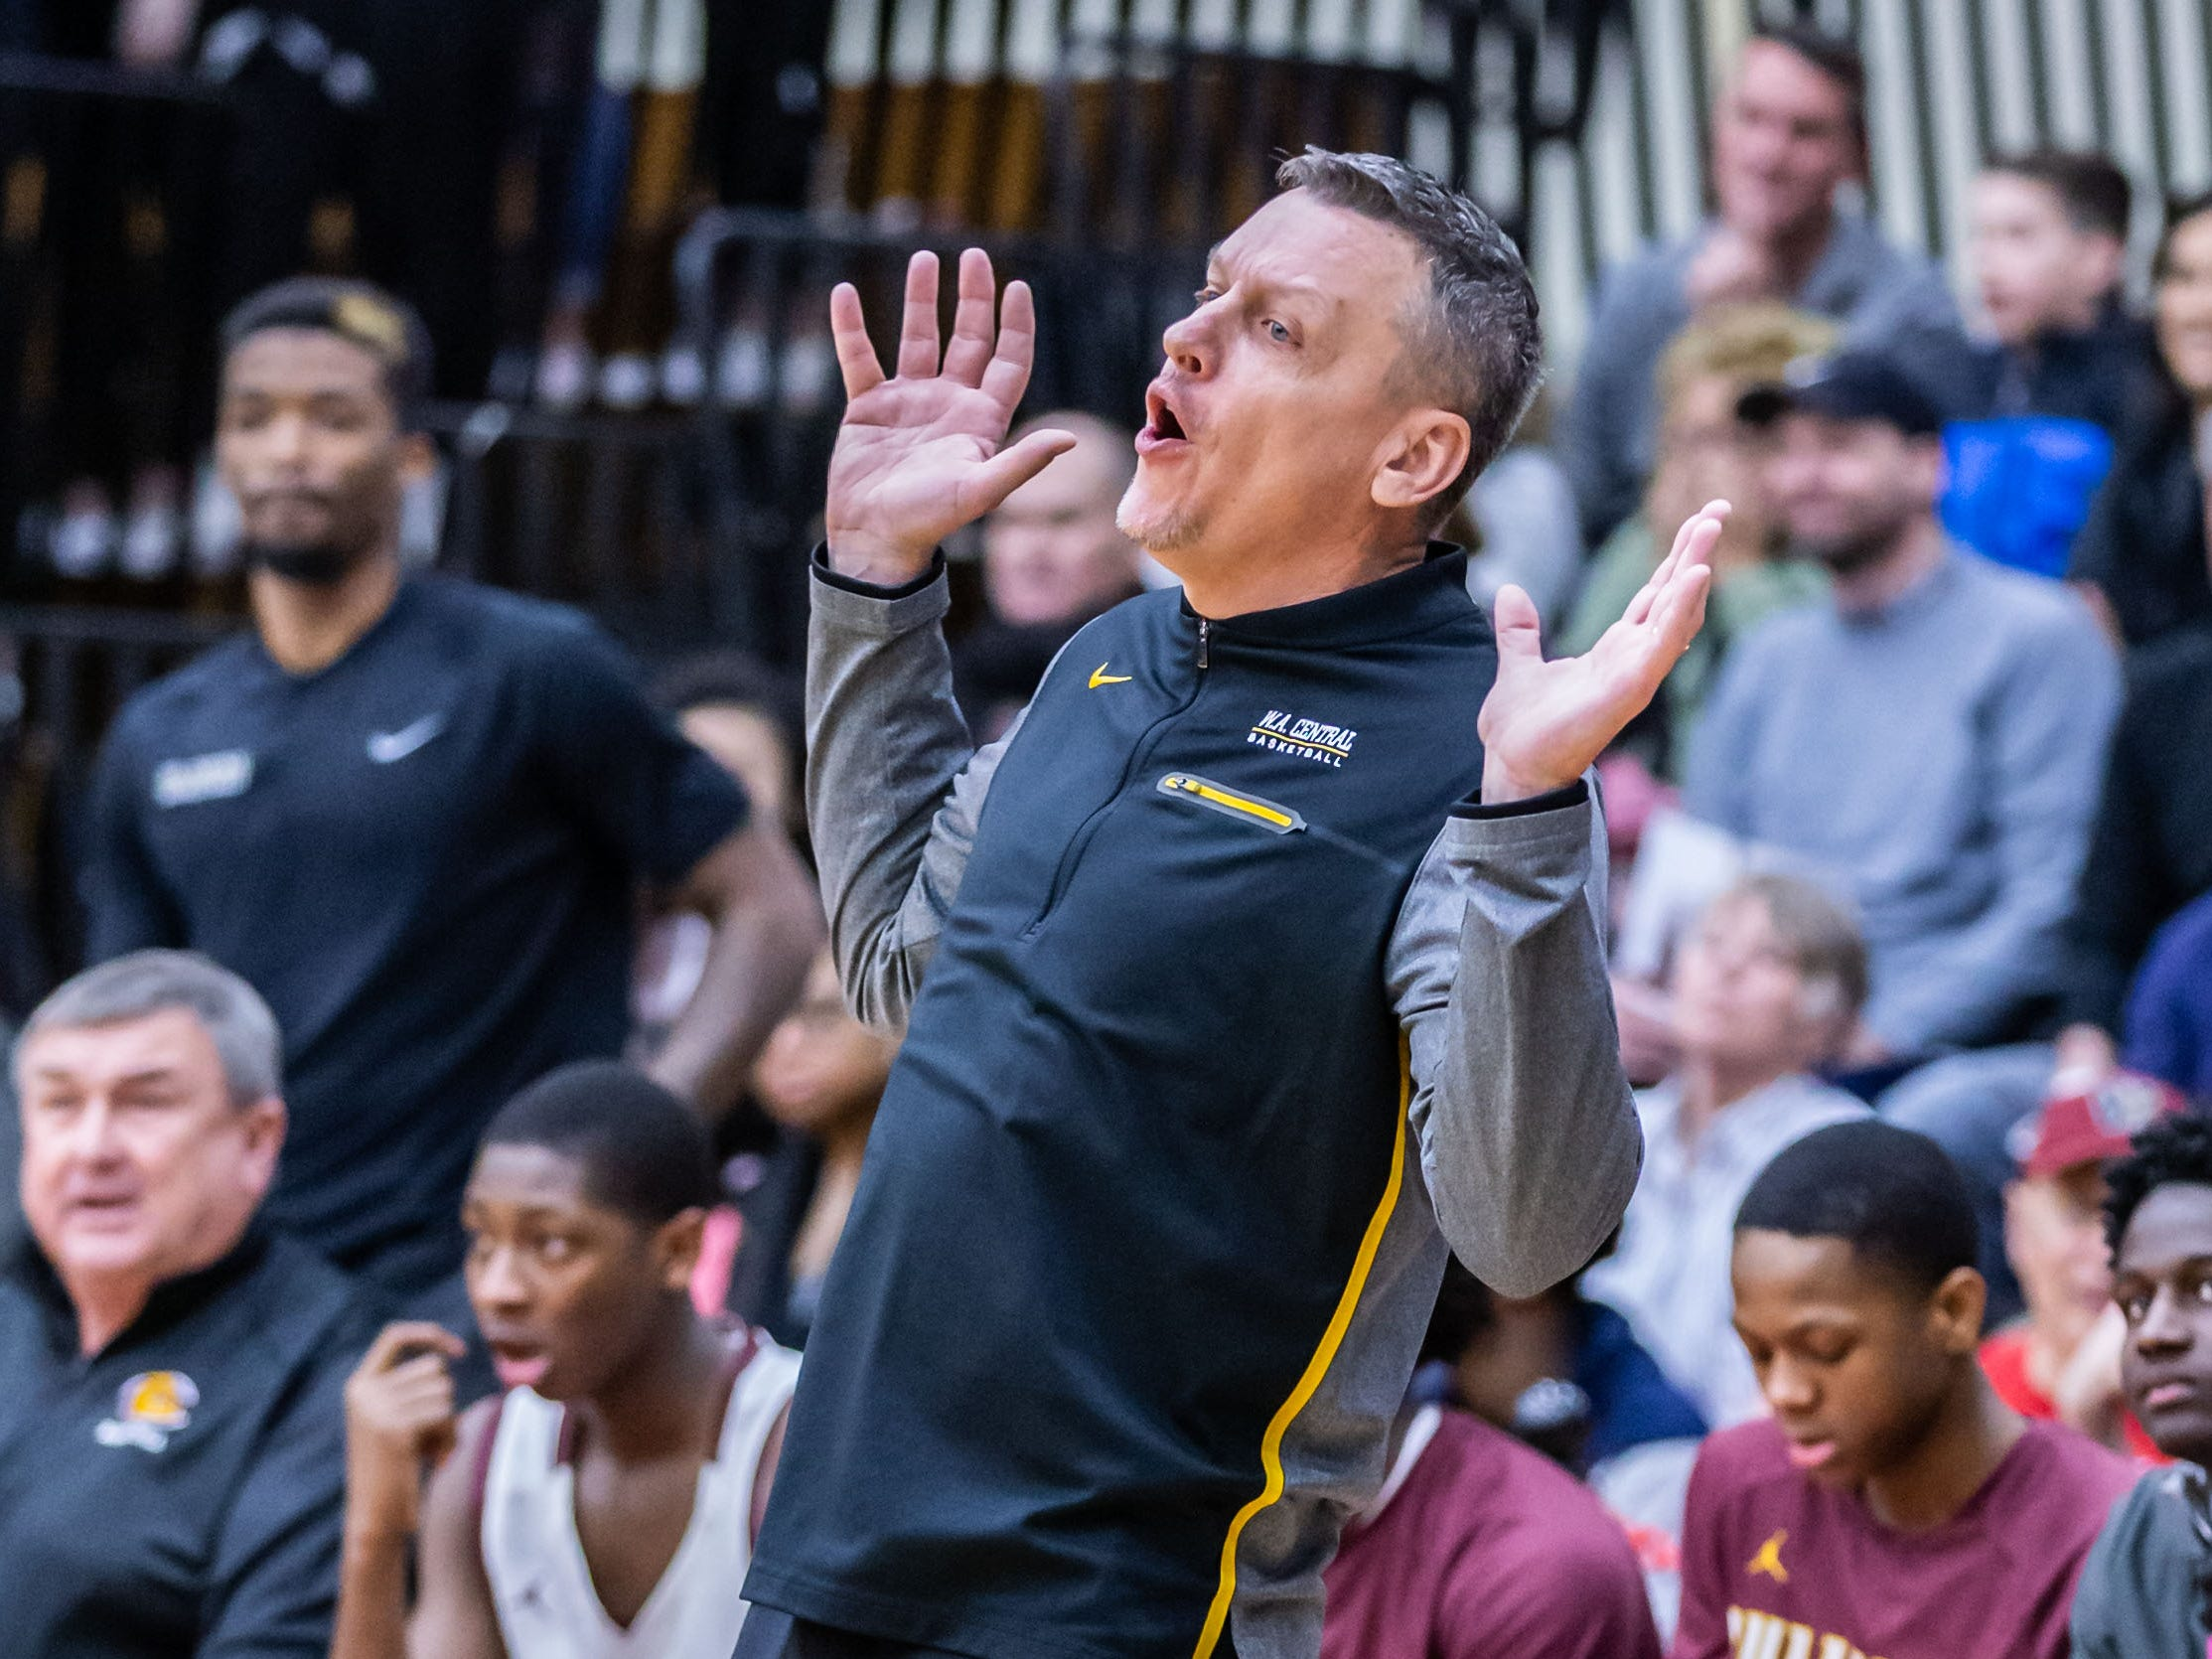 West Allis Central head coach David Mlachnik reacts to a call during the sectional final against Waukesha West at Waukesha South on Saturday, March 9, 2019.